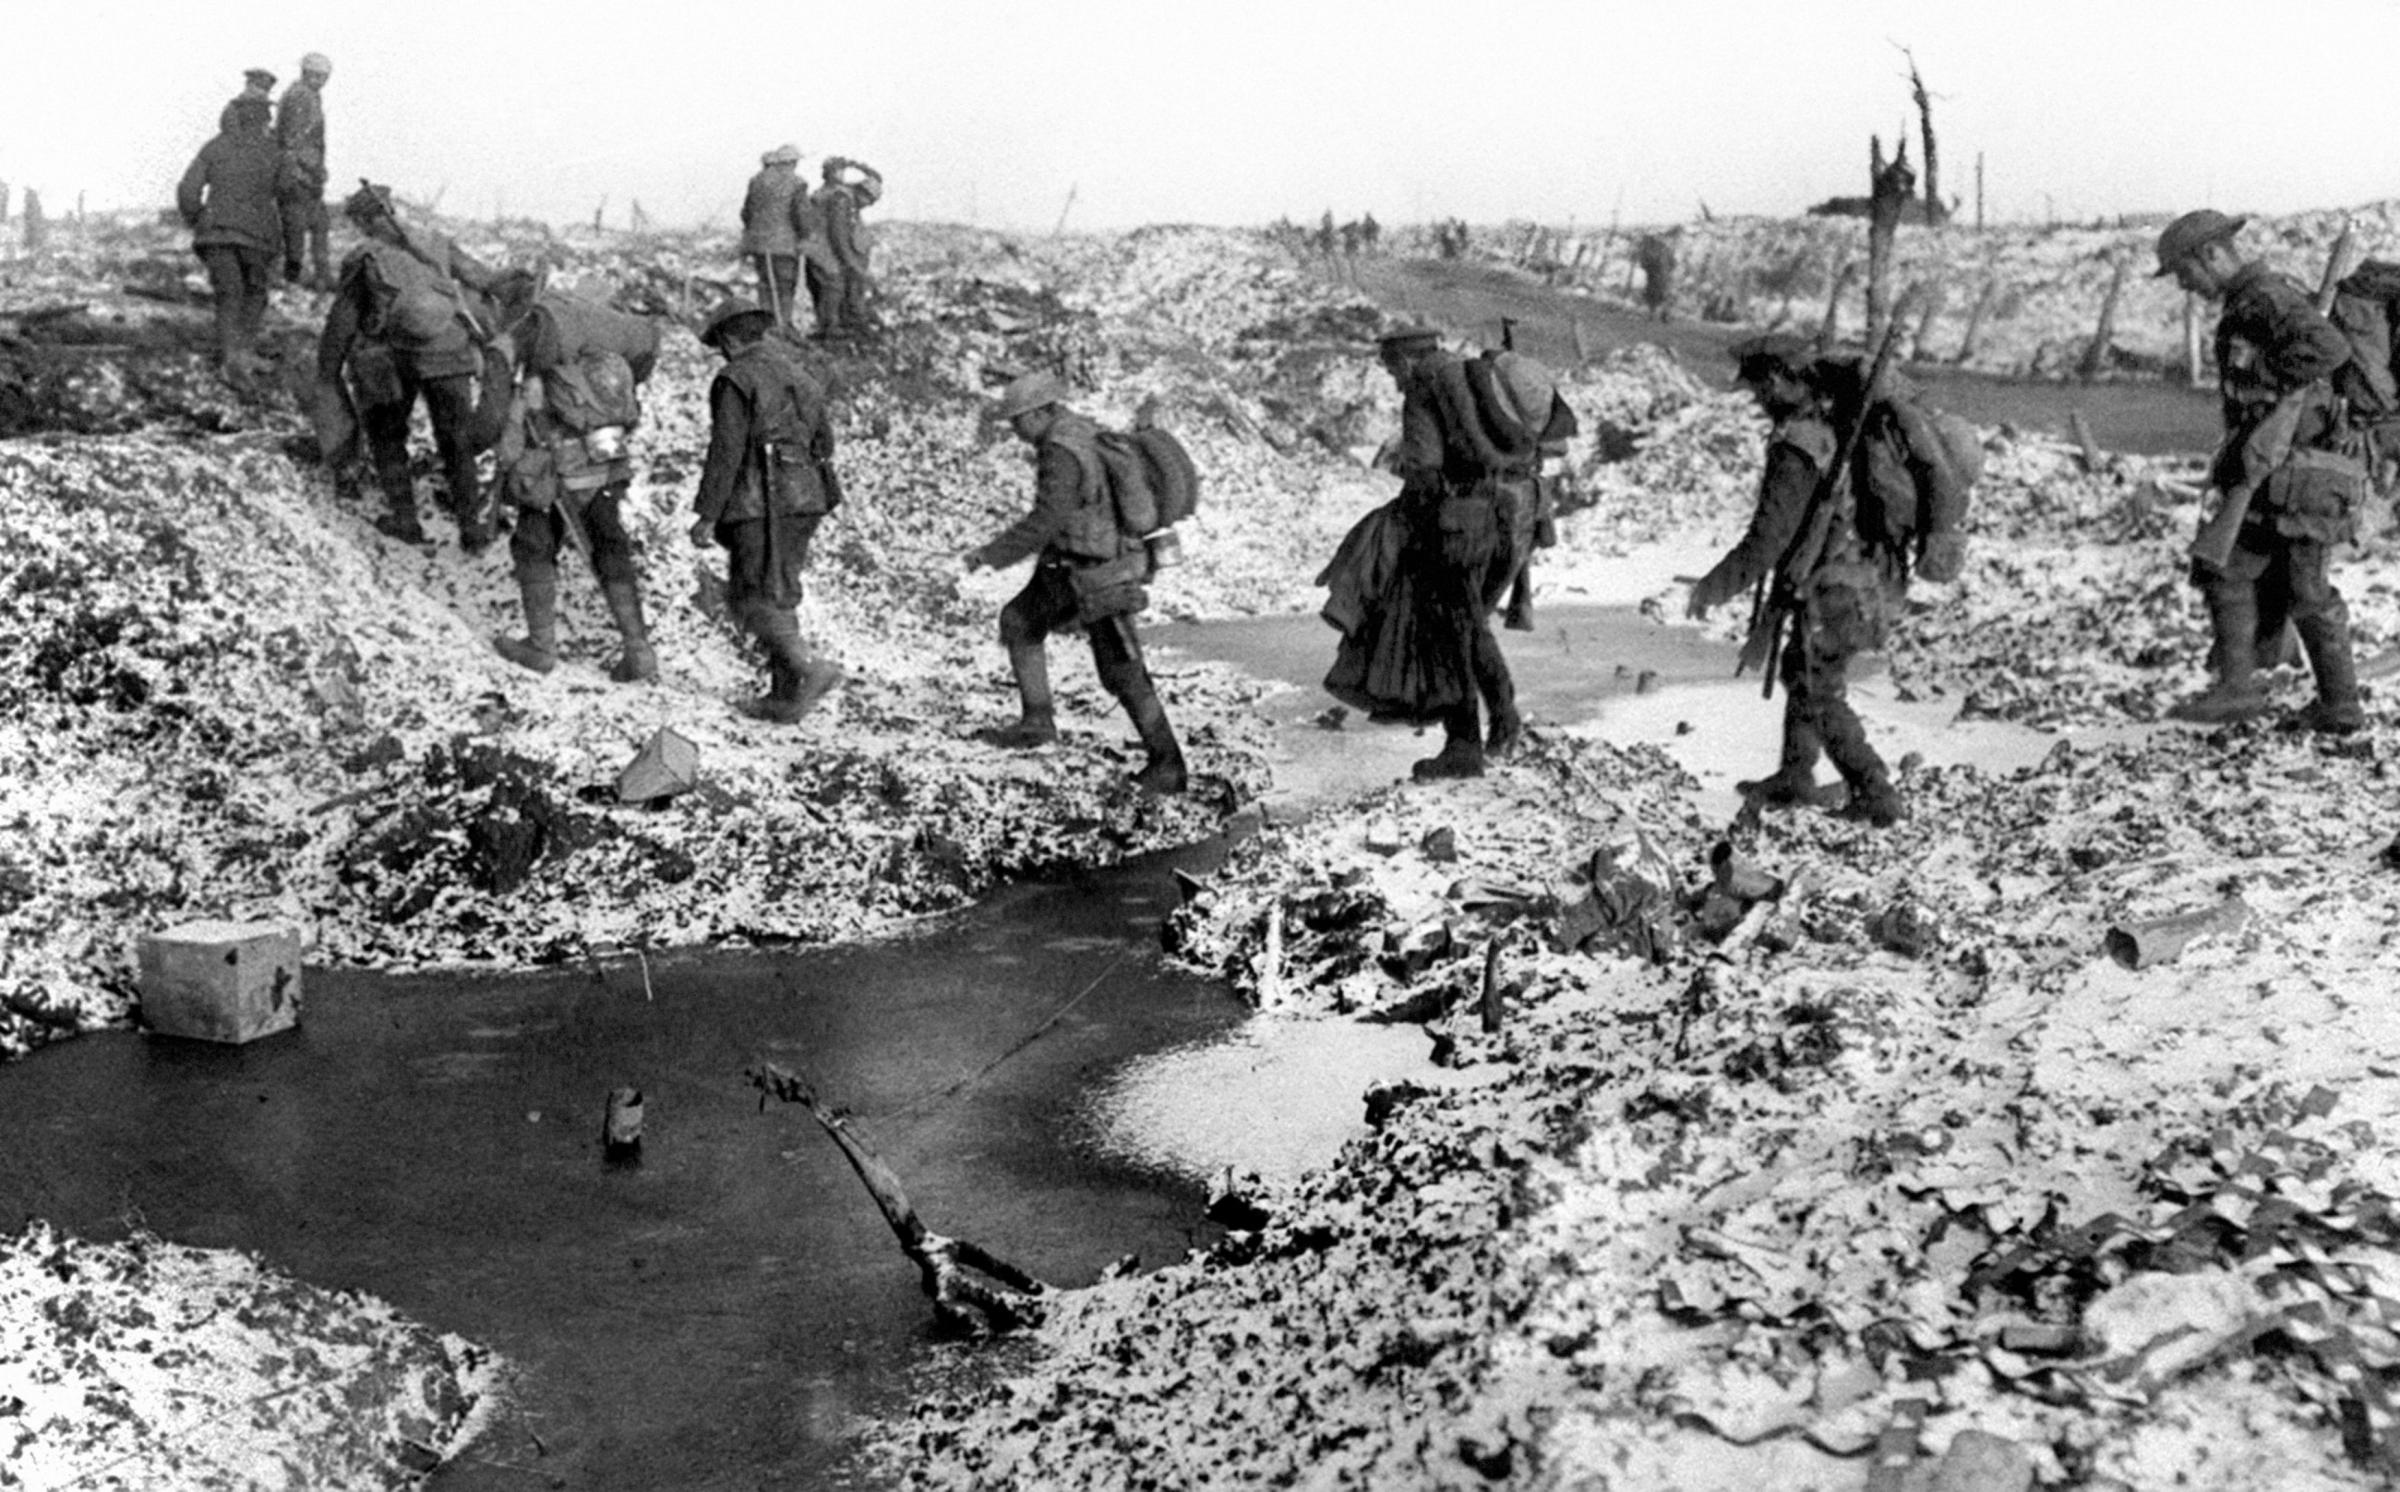 British soldiers negotiating a shell-cratered, winter landscape along the River Somme in late 1916 after the close of the Allied offensive. Picture: PA Wire